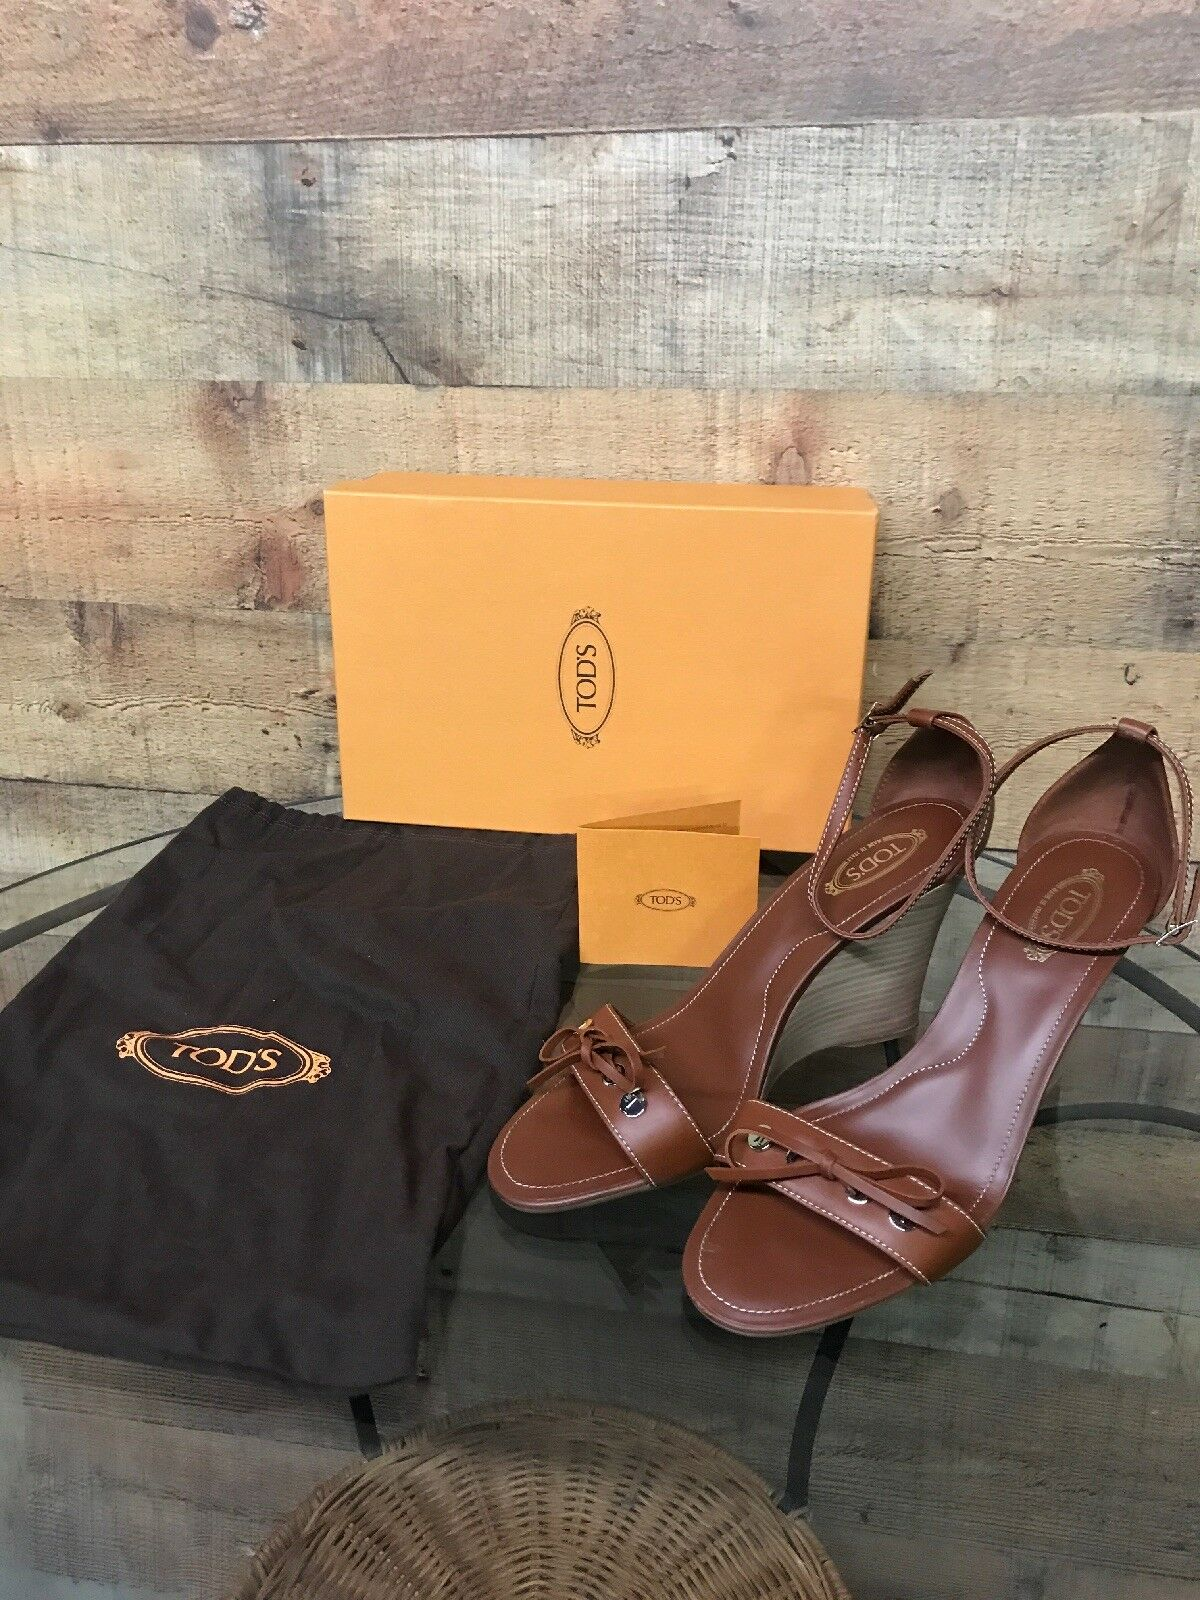 EUC Tods Brown leather Zeppa wedge W Ankle Women sandals size US Size 10 Euro 40